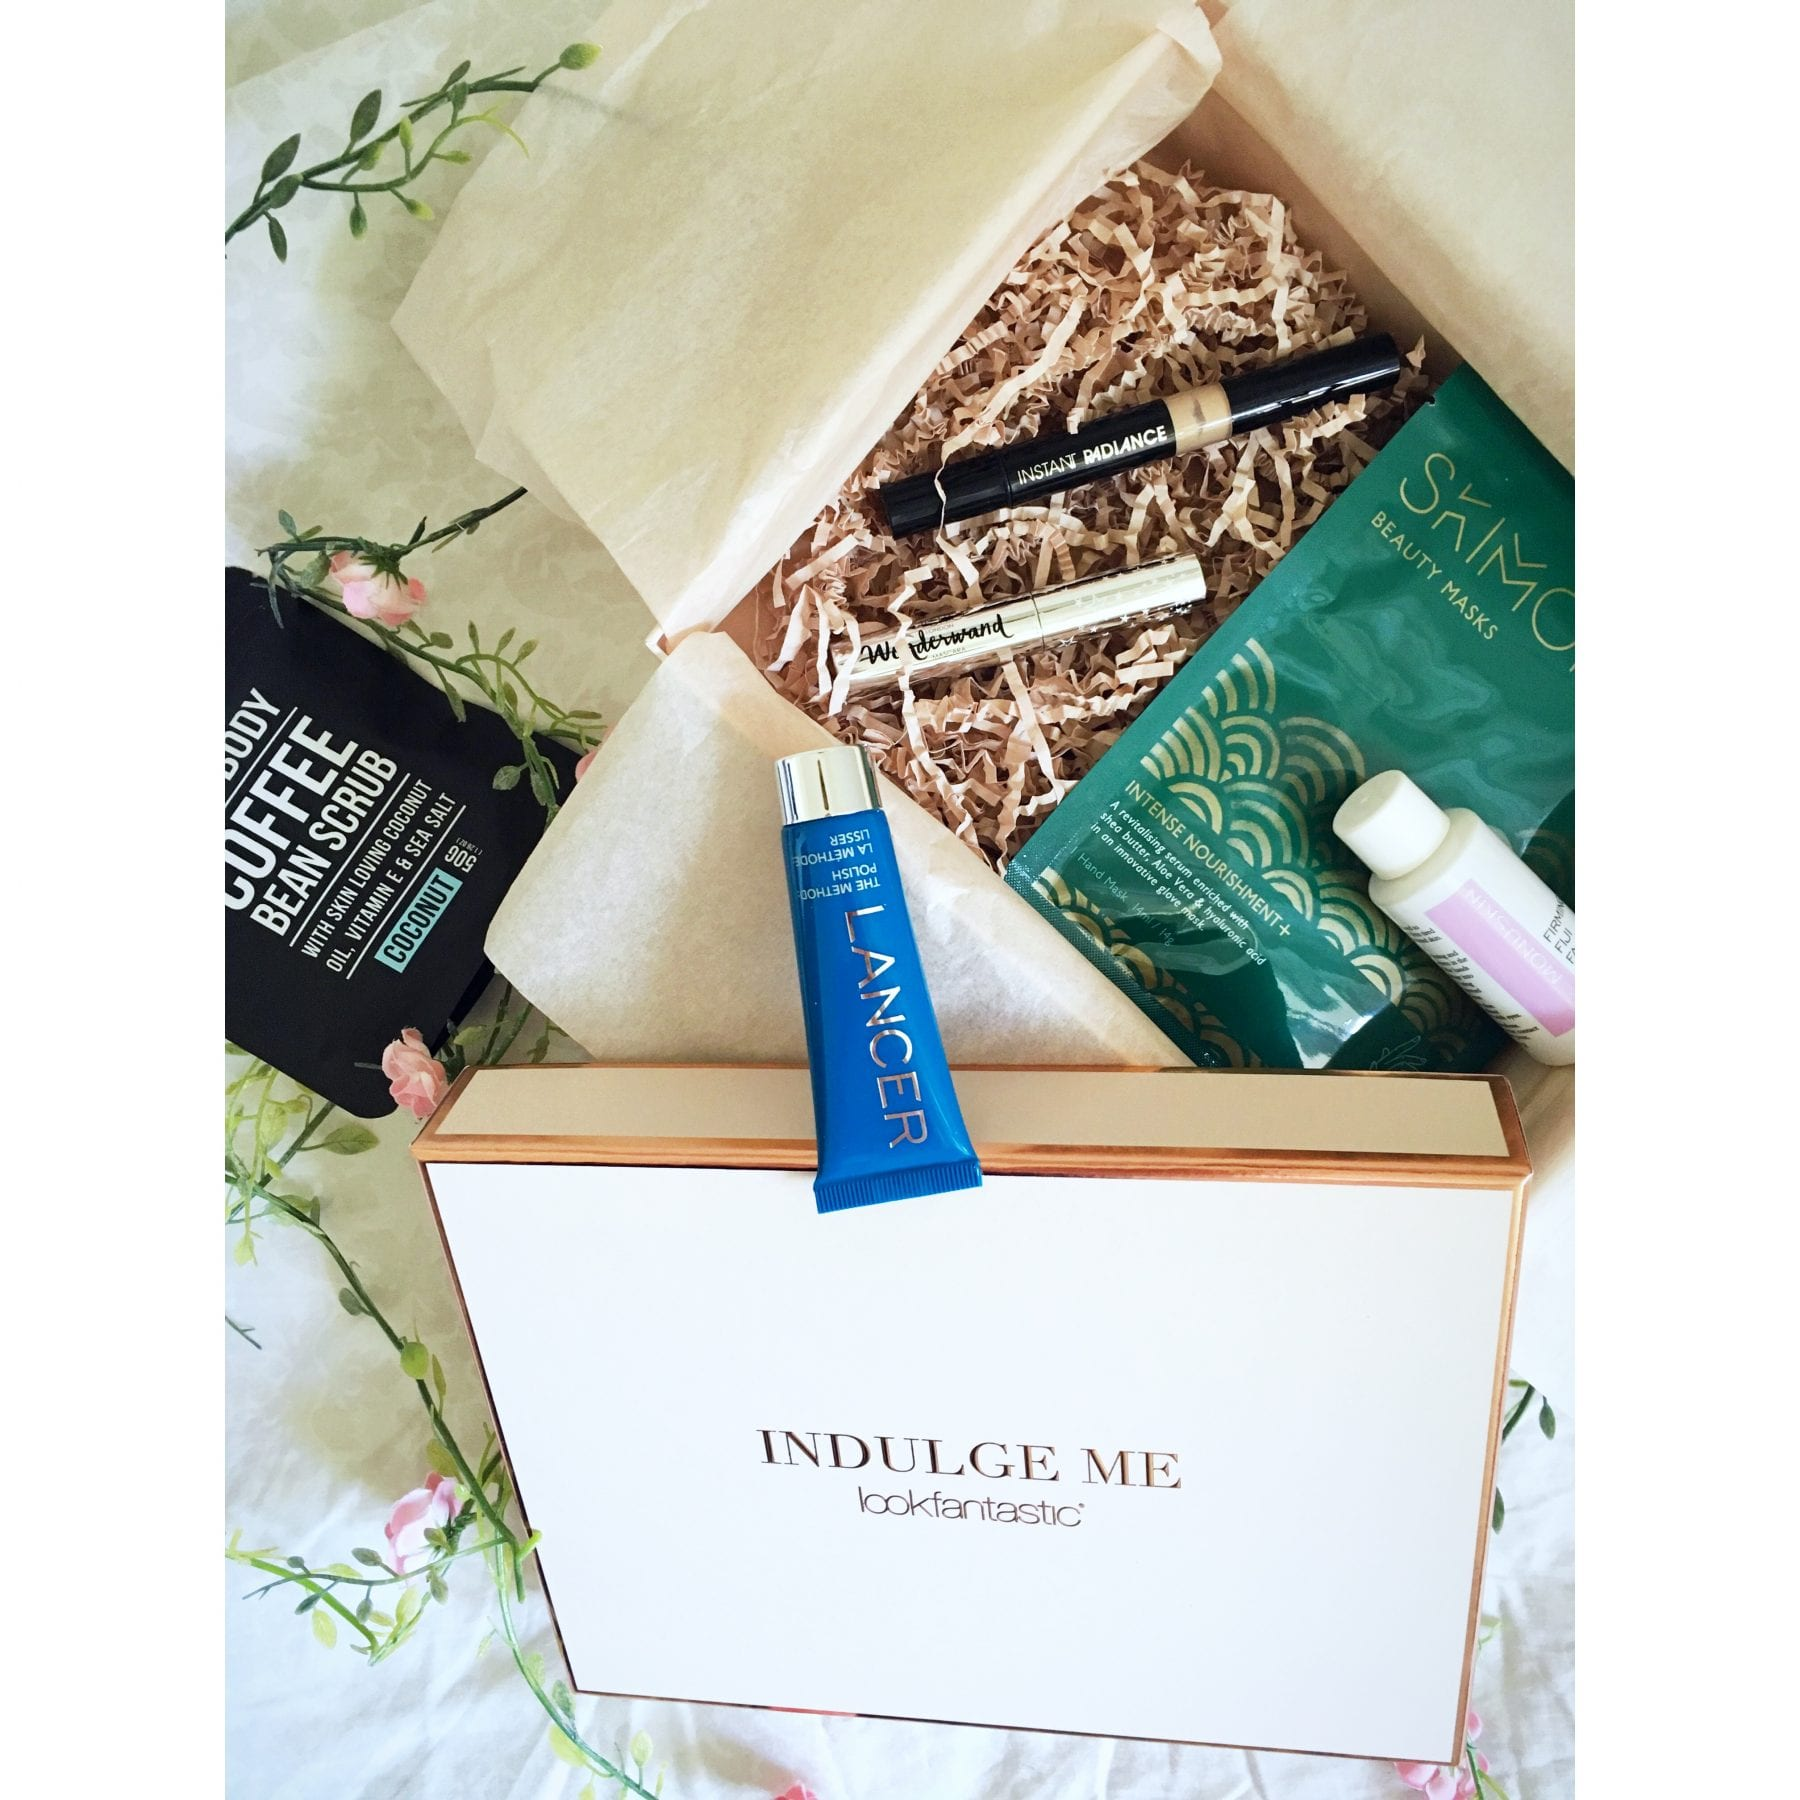 Indulge Me Beauty Box lookfantastic